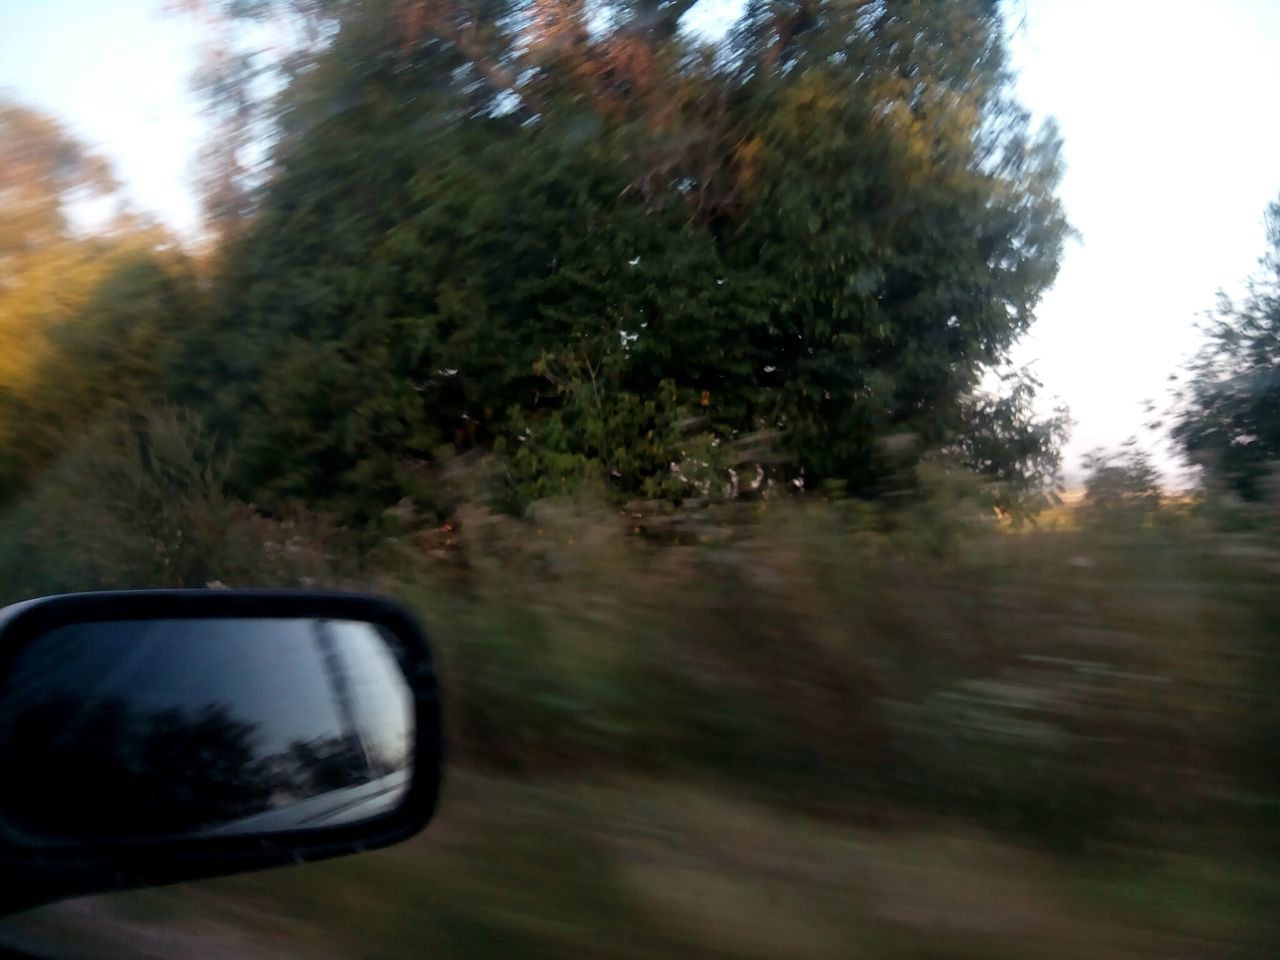 The Drive Tree Car Land Vehicle Transportation Reflection Mode Of Transport Nature No People Day Outdoors Close-up Vehicle Mirror Nature_collection Nature Photography Trip Travel Travel Destinations Tranquility Scenics Environment